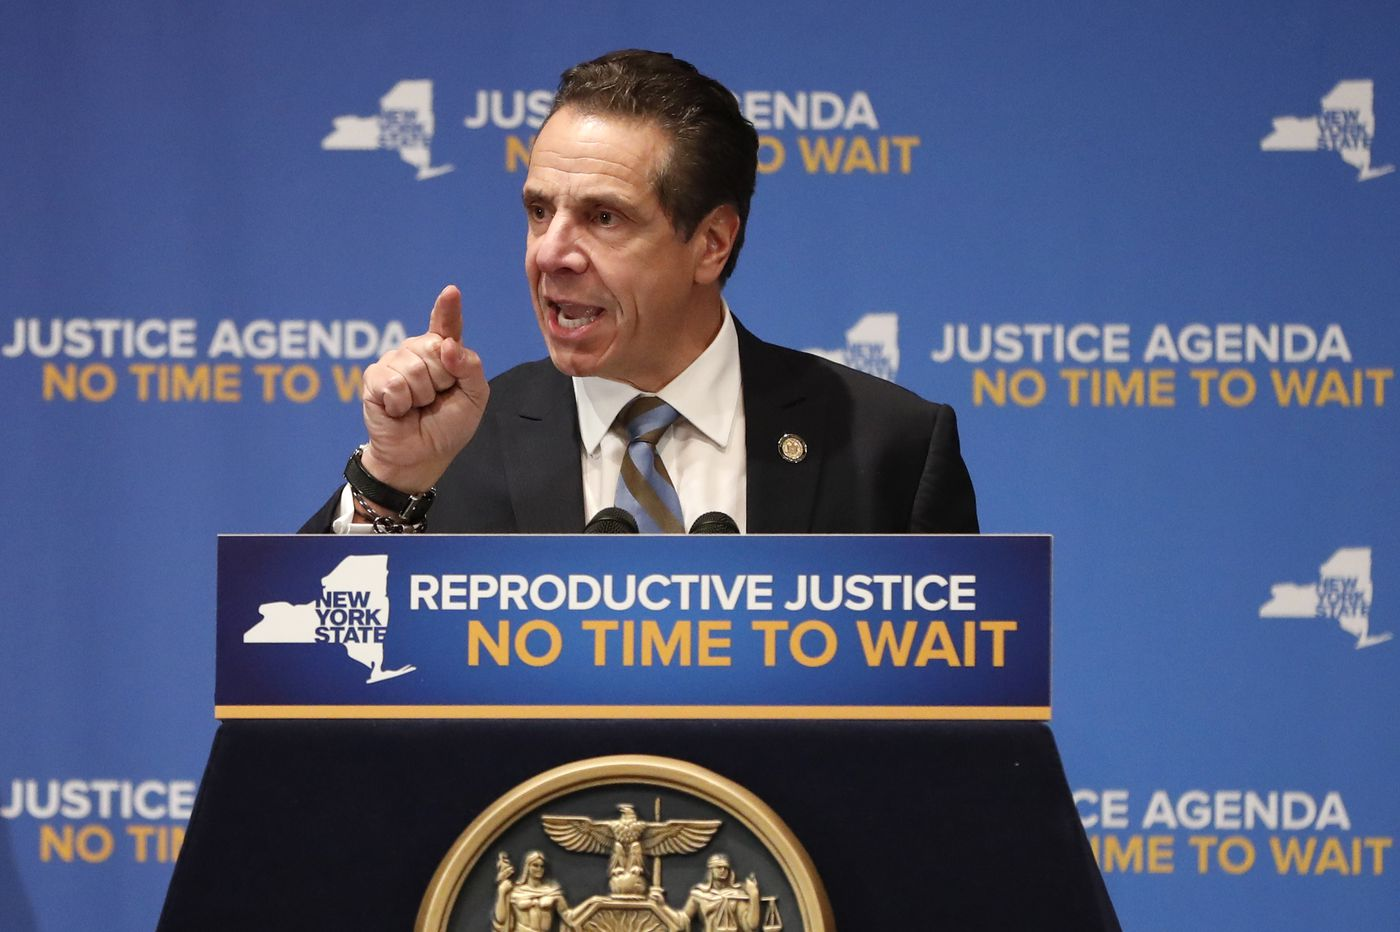 Andrew Cuomo rejects the fundamental values of his faith by signing New York abortion law | Christine Flowers